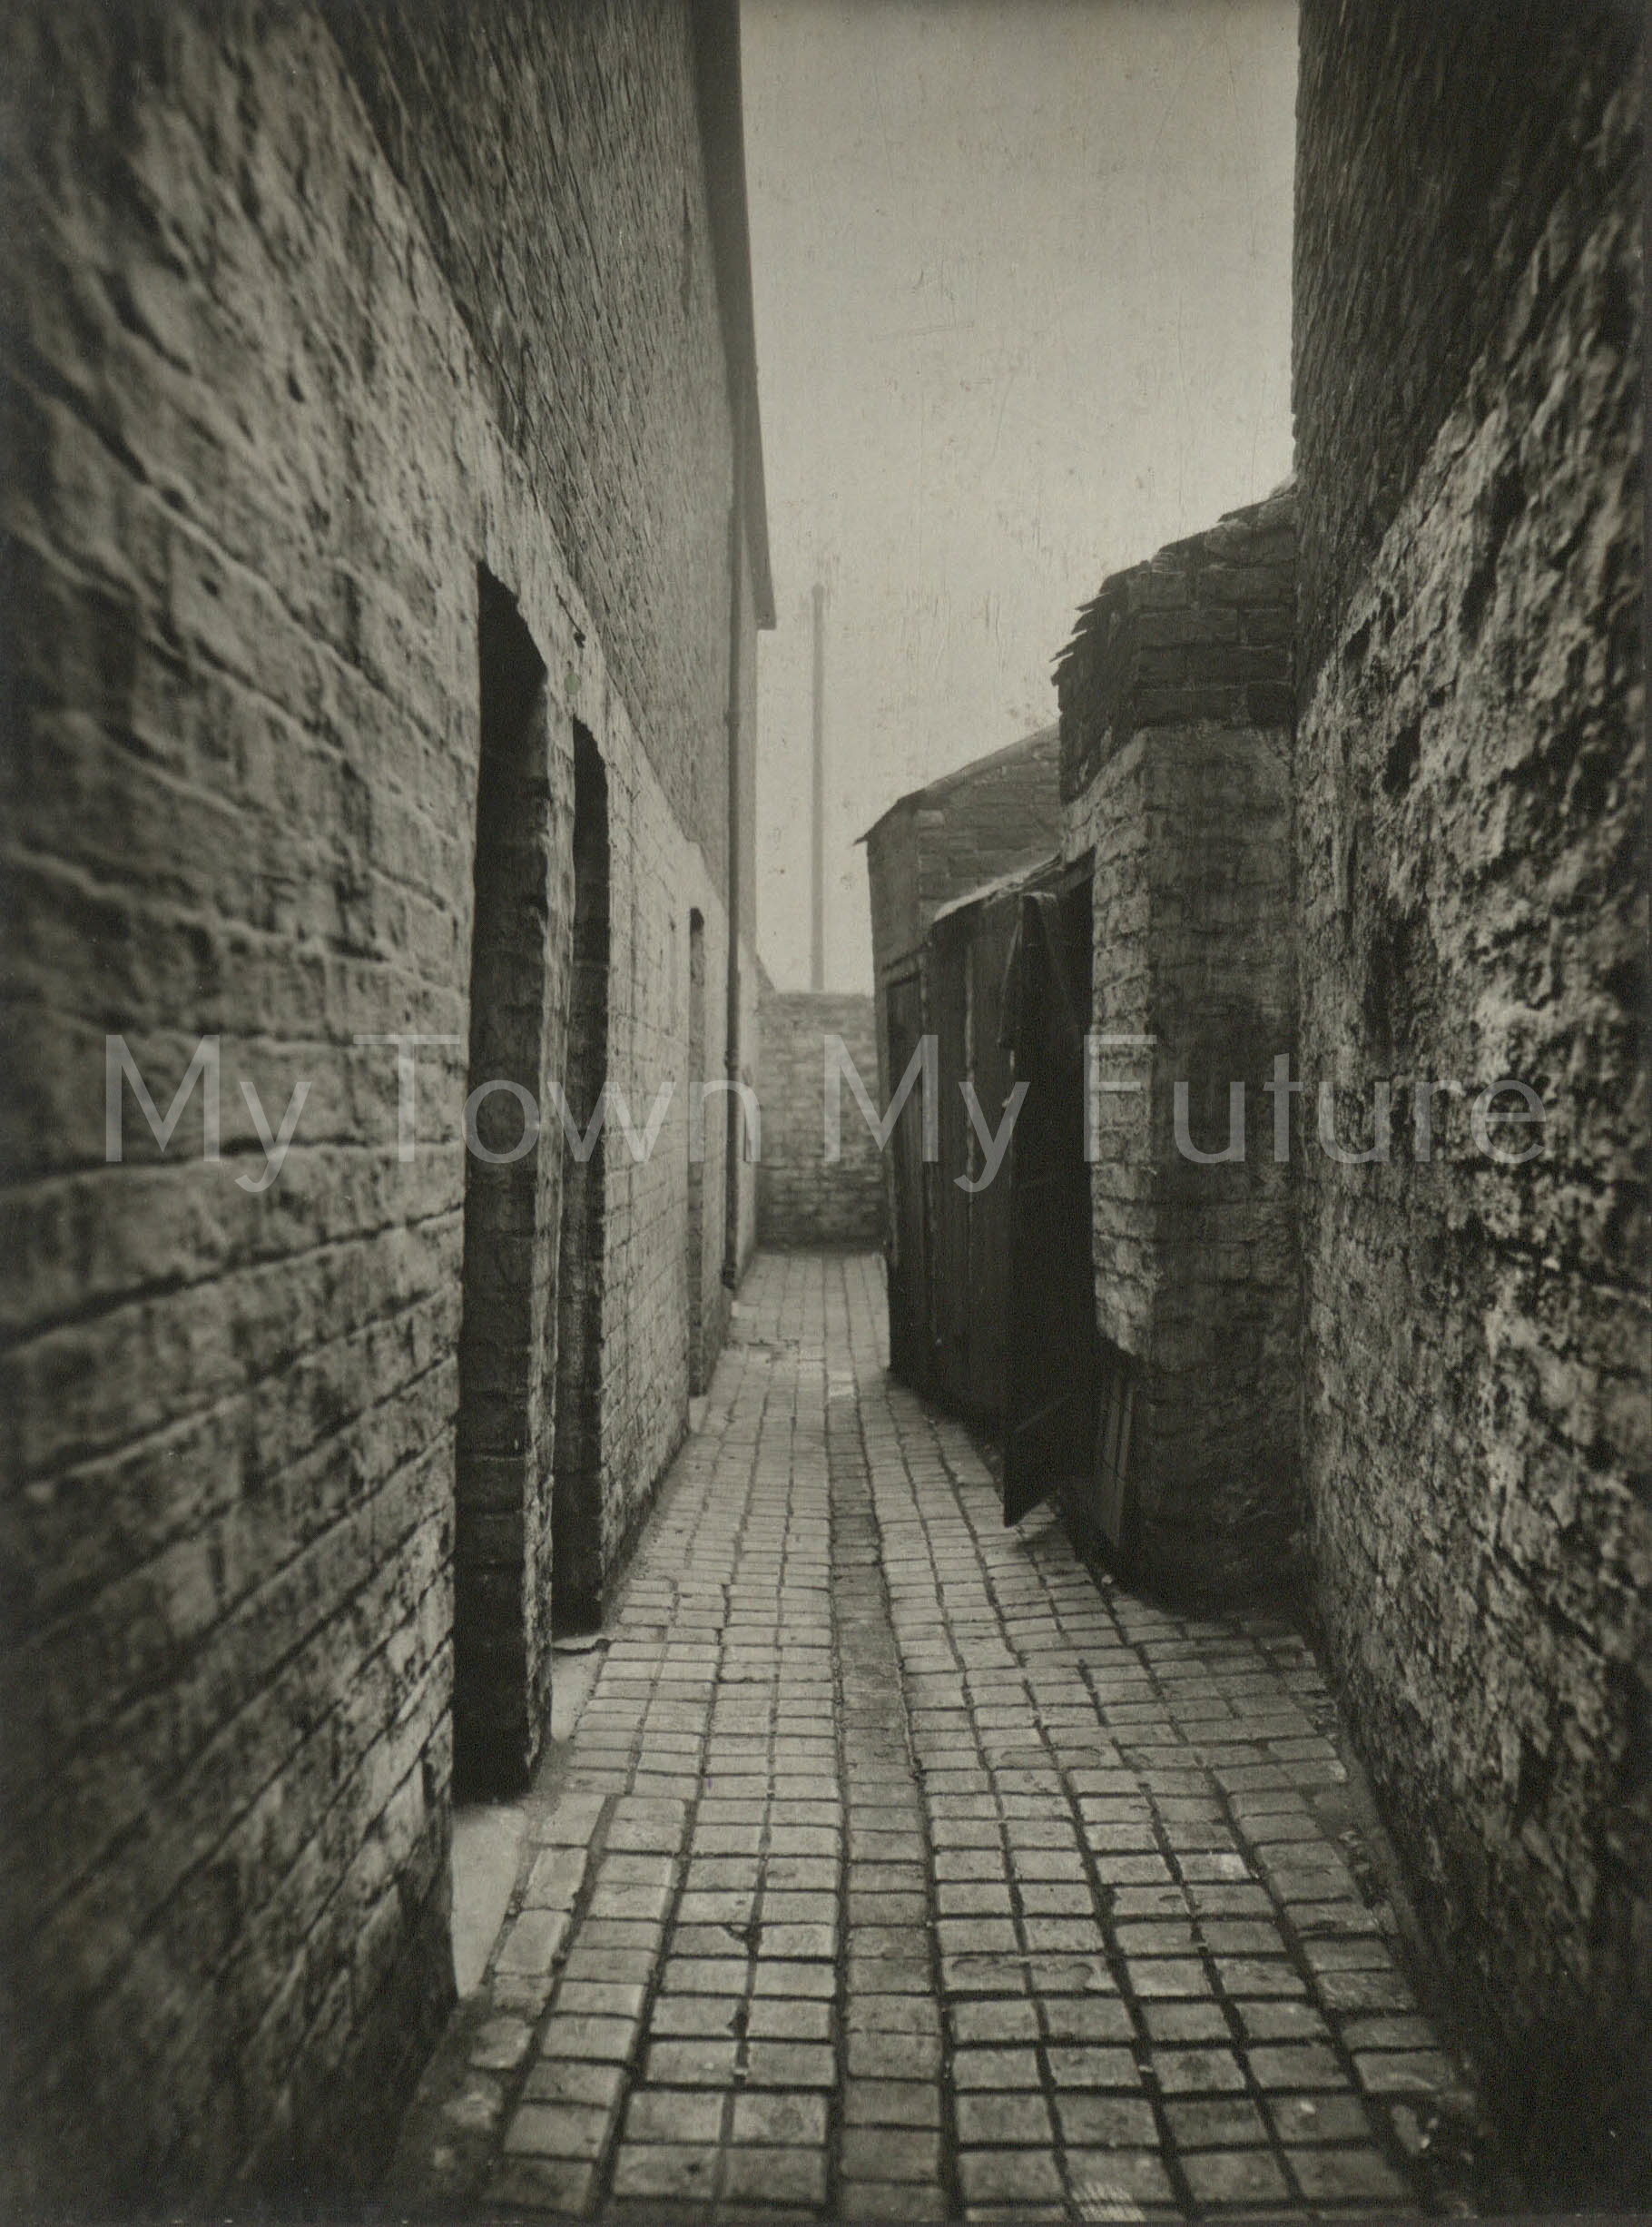 Danley Place, Off North Road, St Hilda's Area.